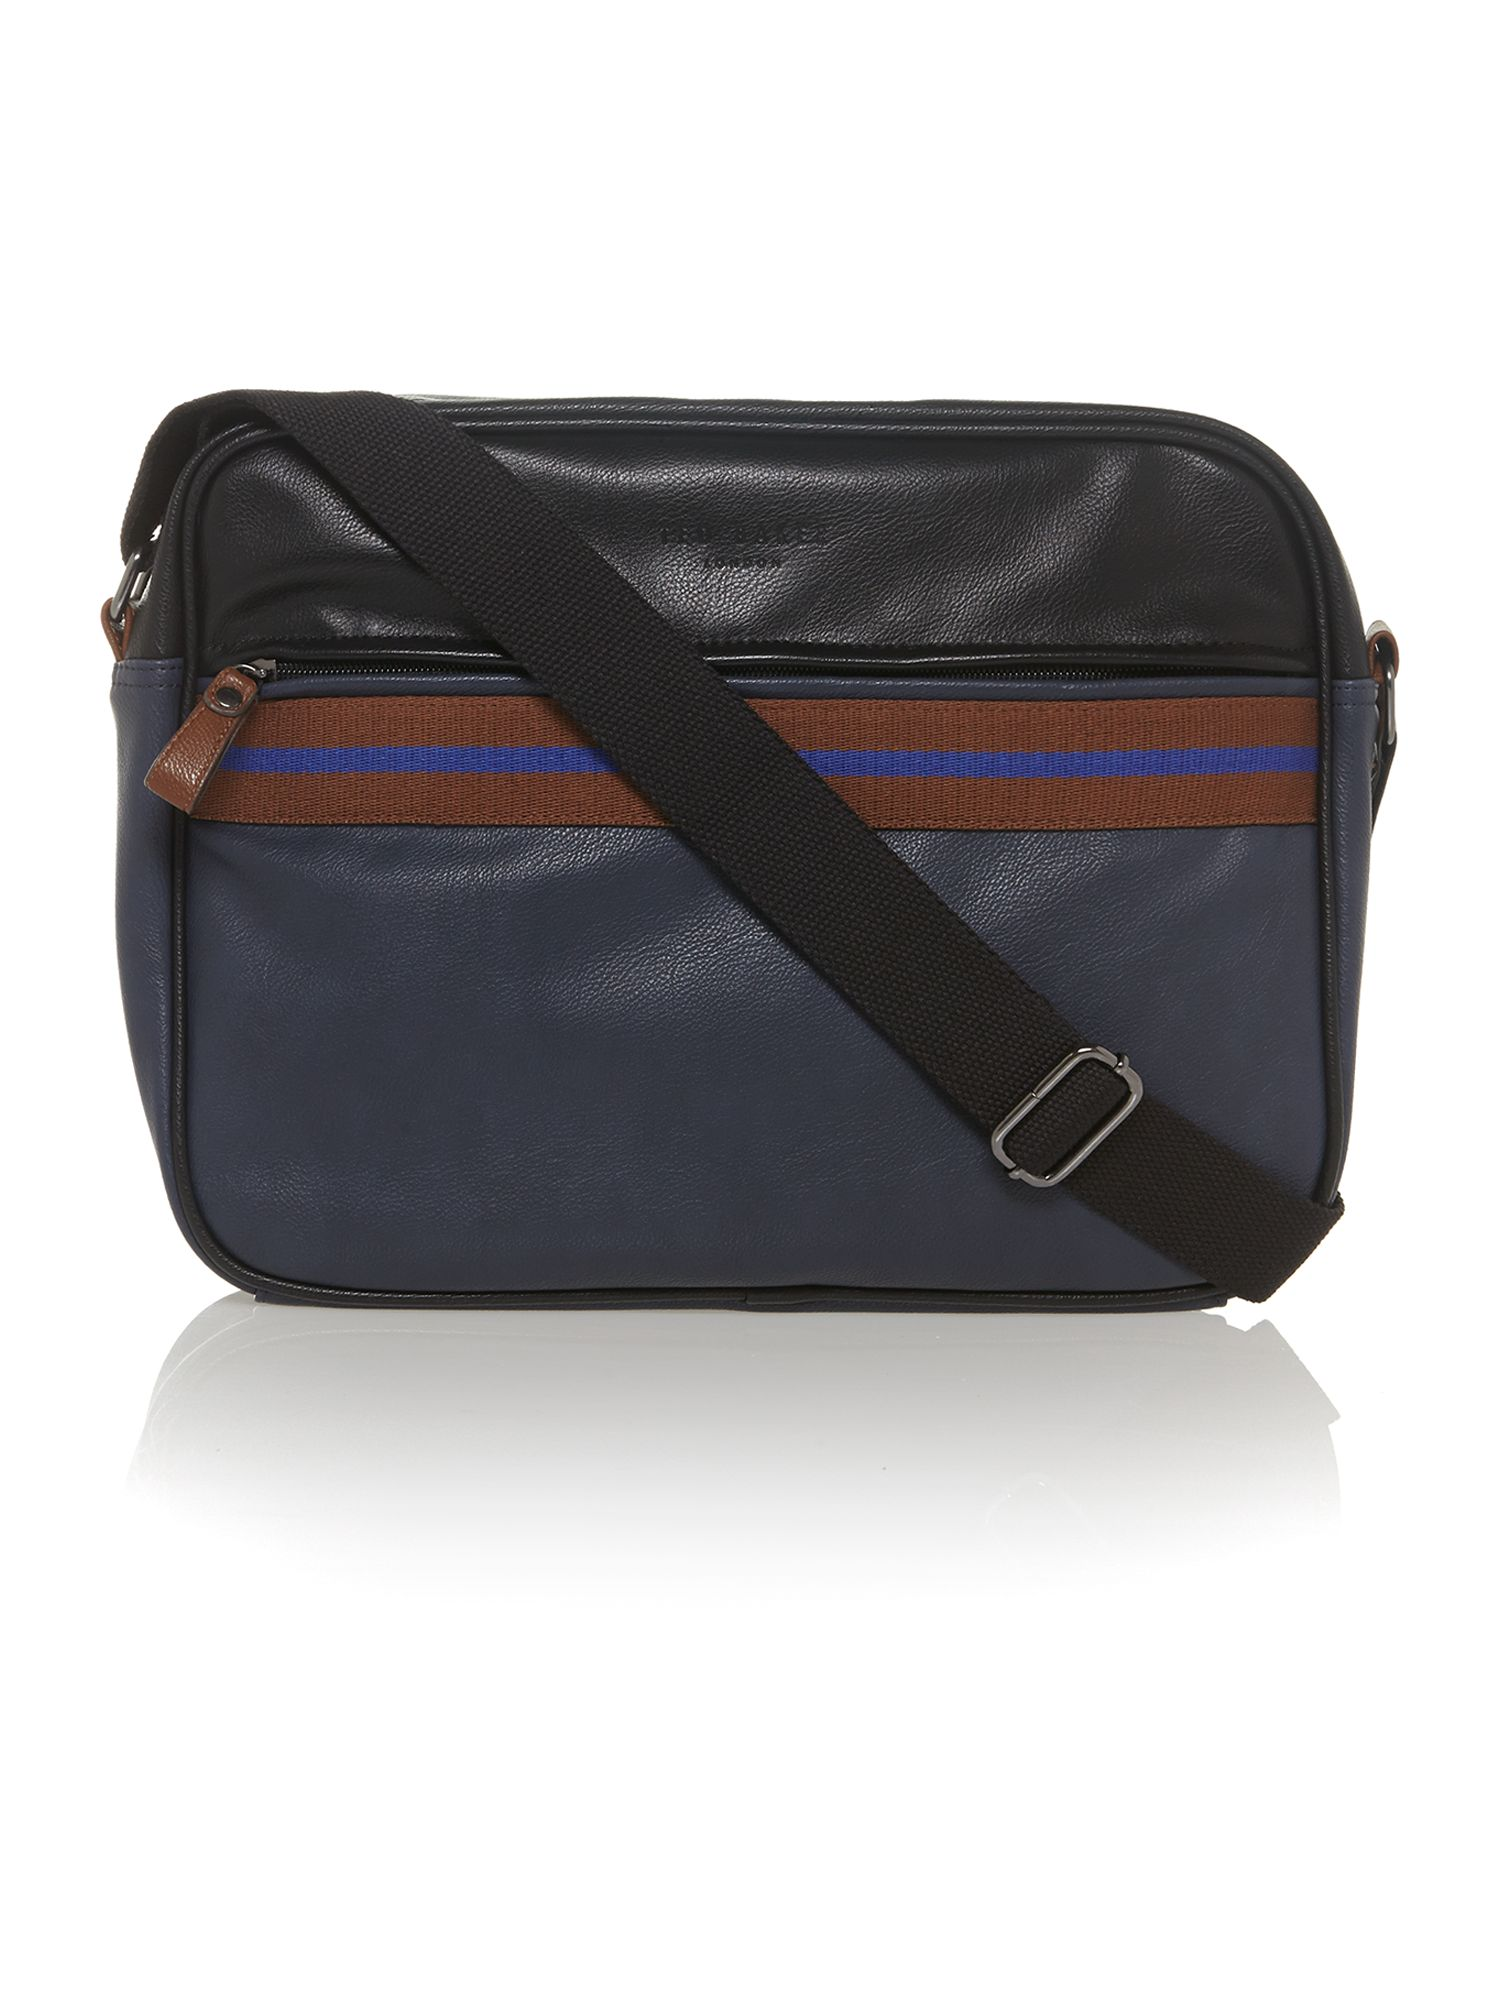 Core messenger bag